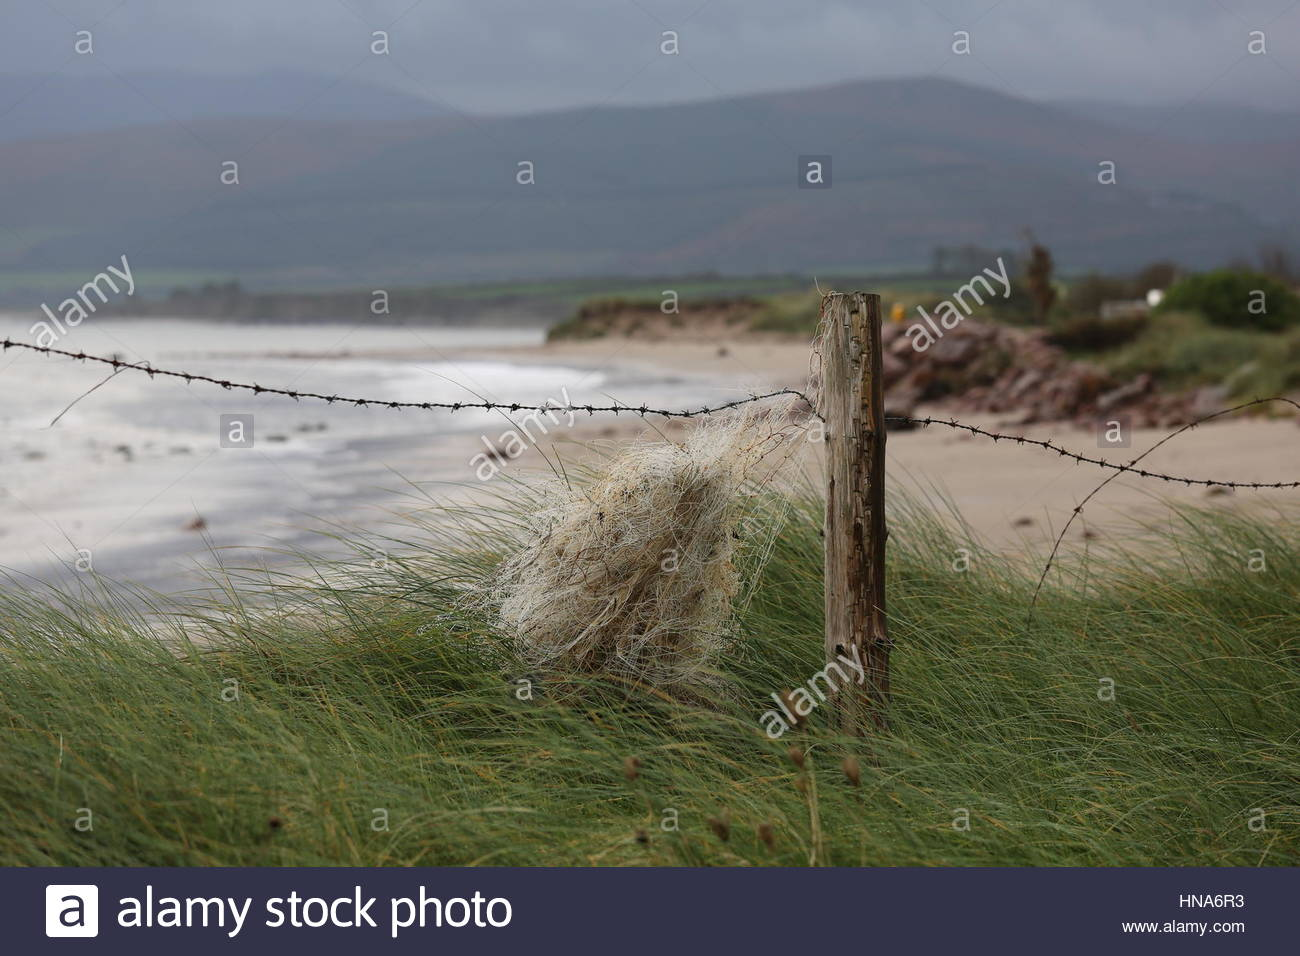 Ireland in all its beauty: - Stock Image